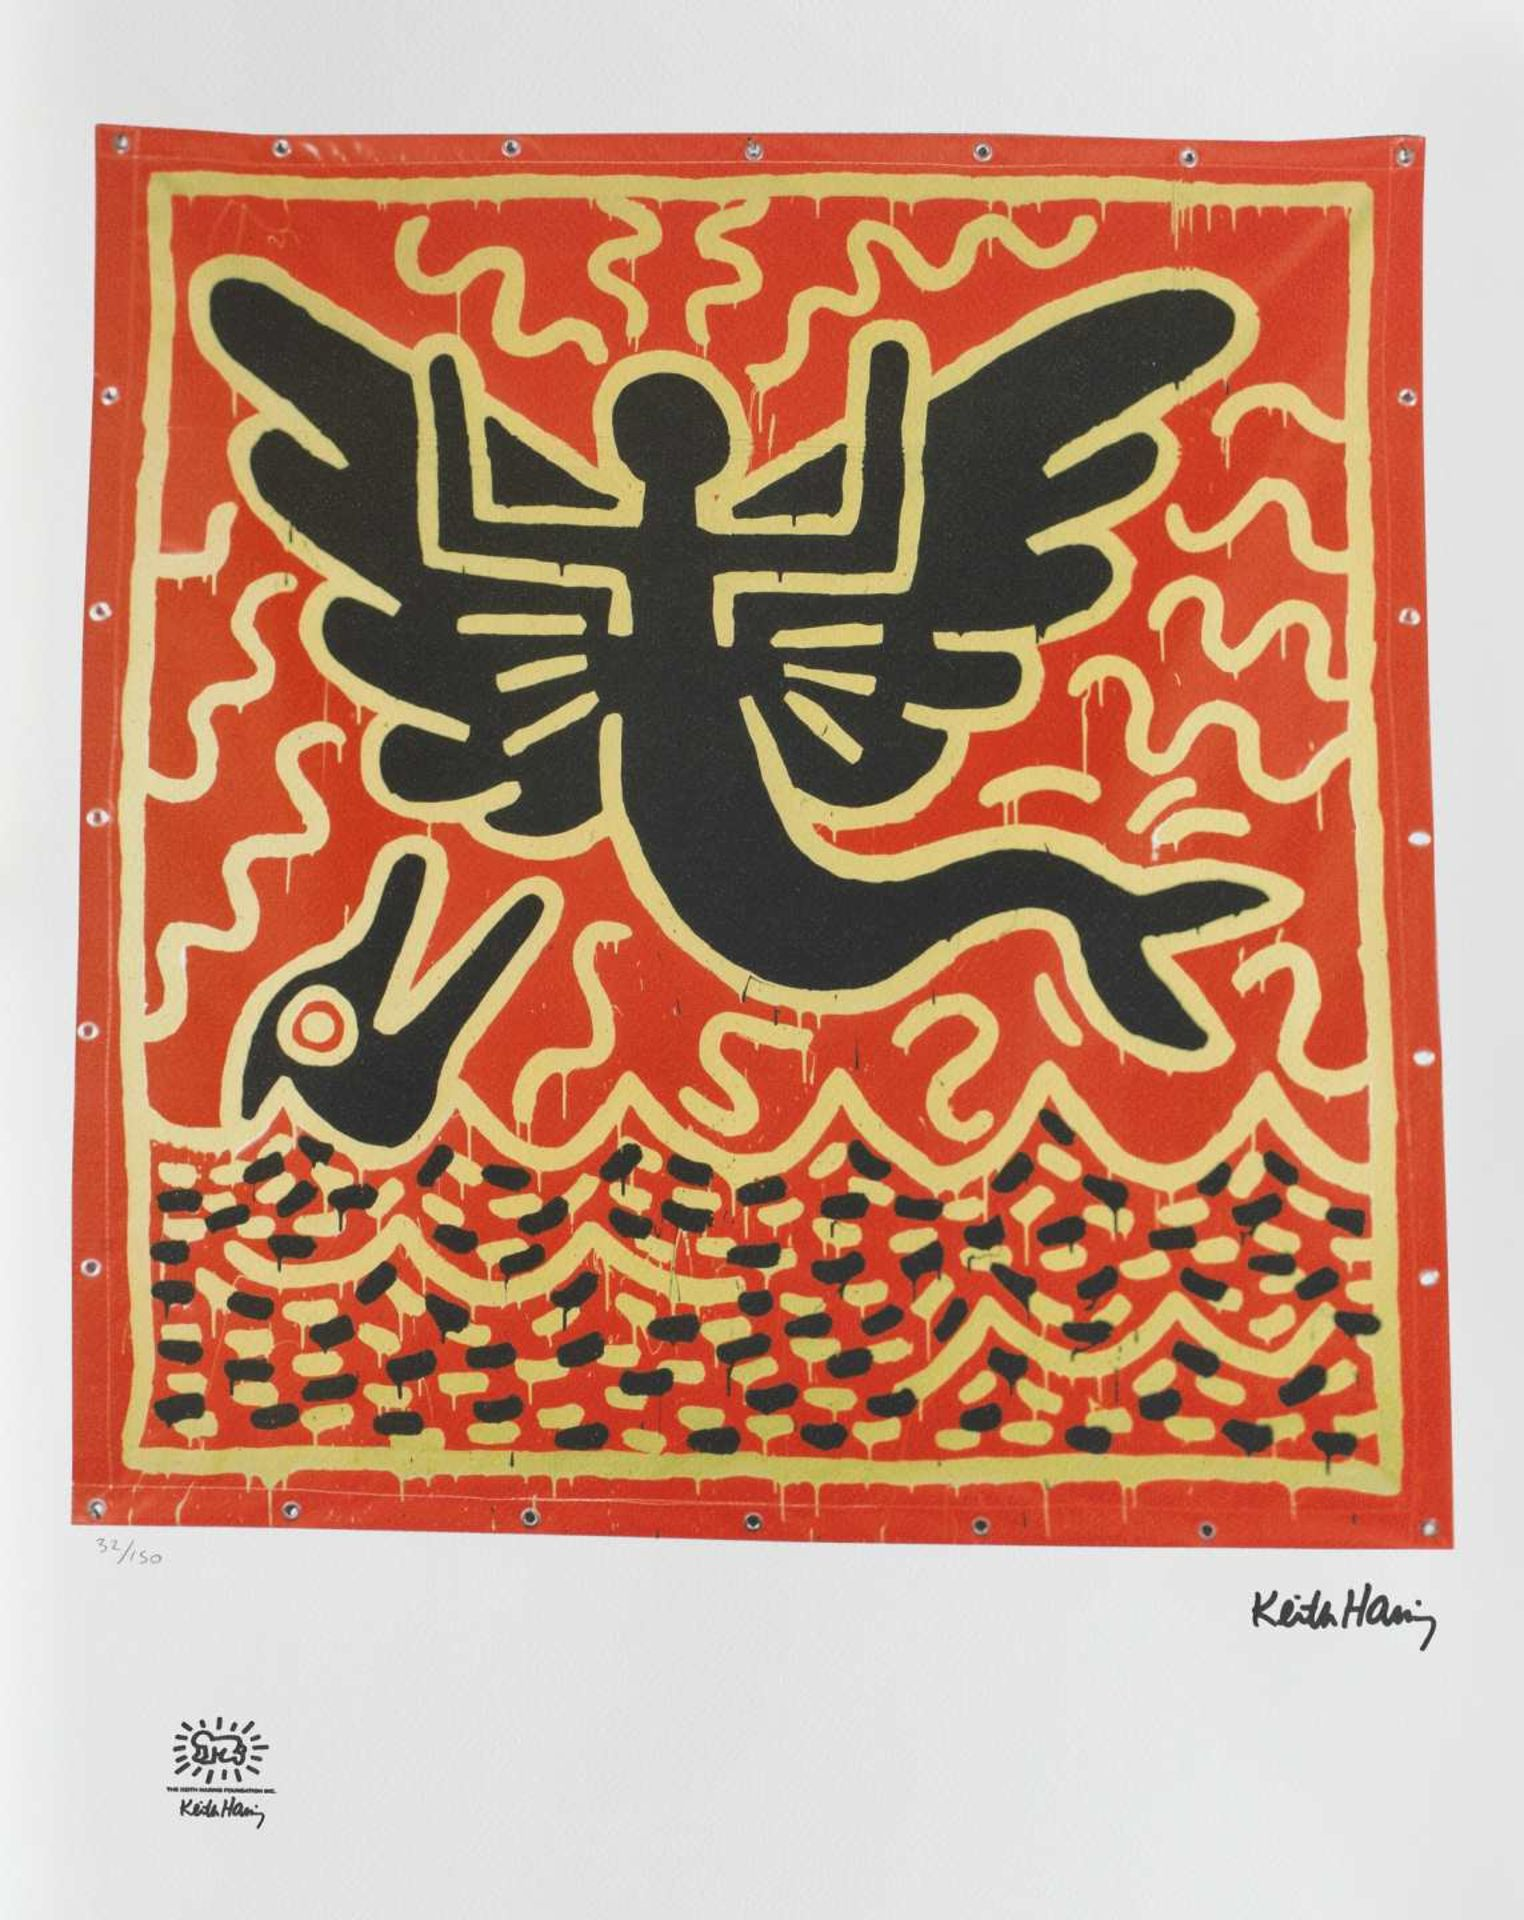 Keith Haring, Mermaid with DolphinKeith Haring, Mermaid with Dolphin, chromolithography, 46 ×